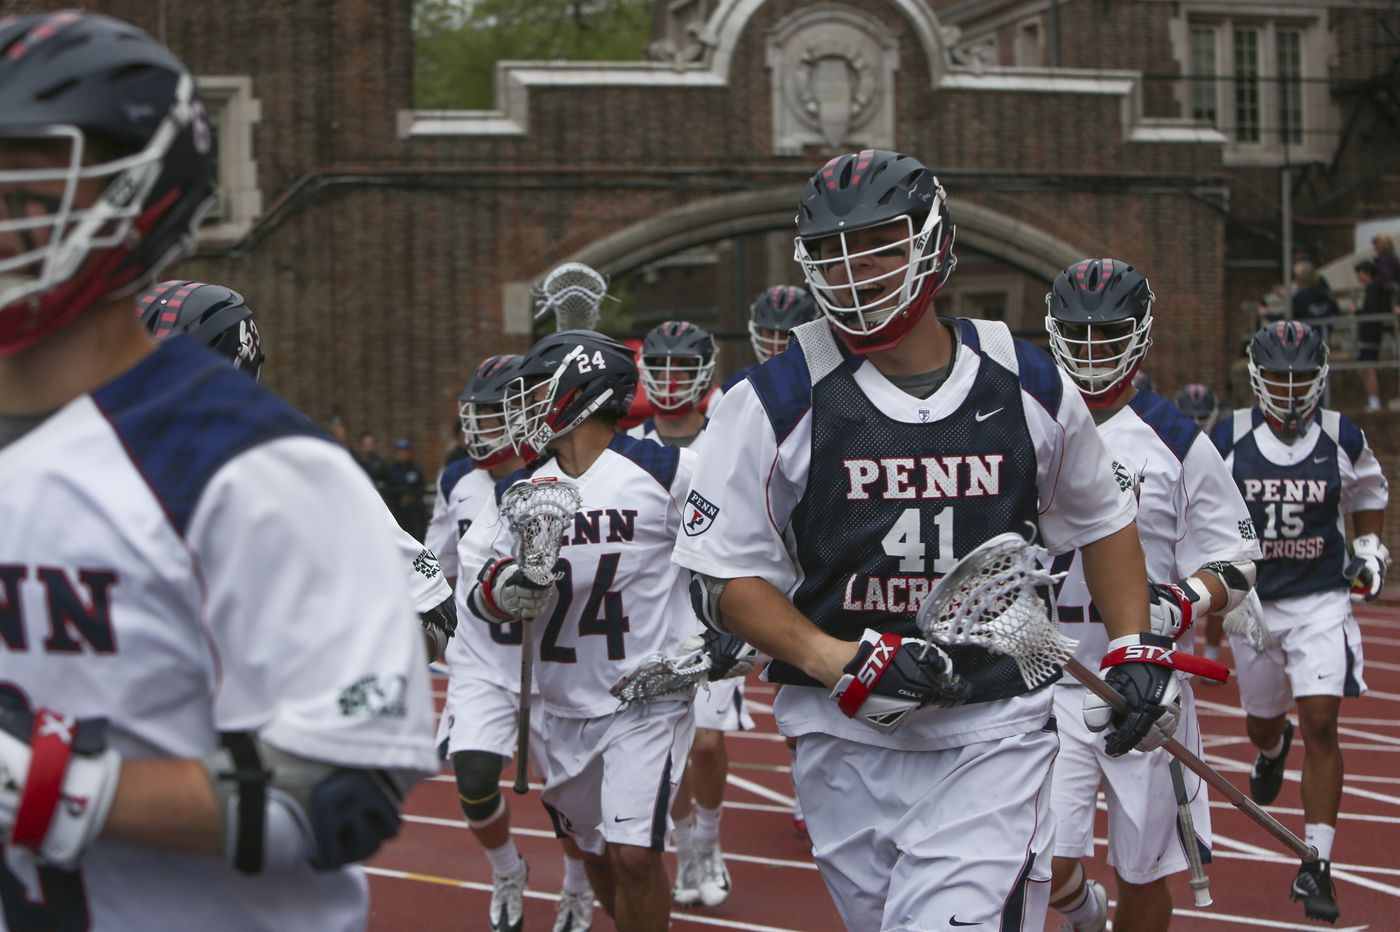 Penn men's lacrosse team seeks third win against Yale, this time in NCAA Tournament